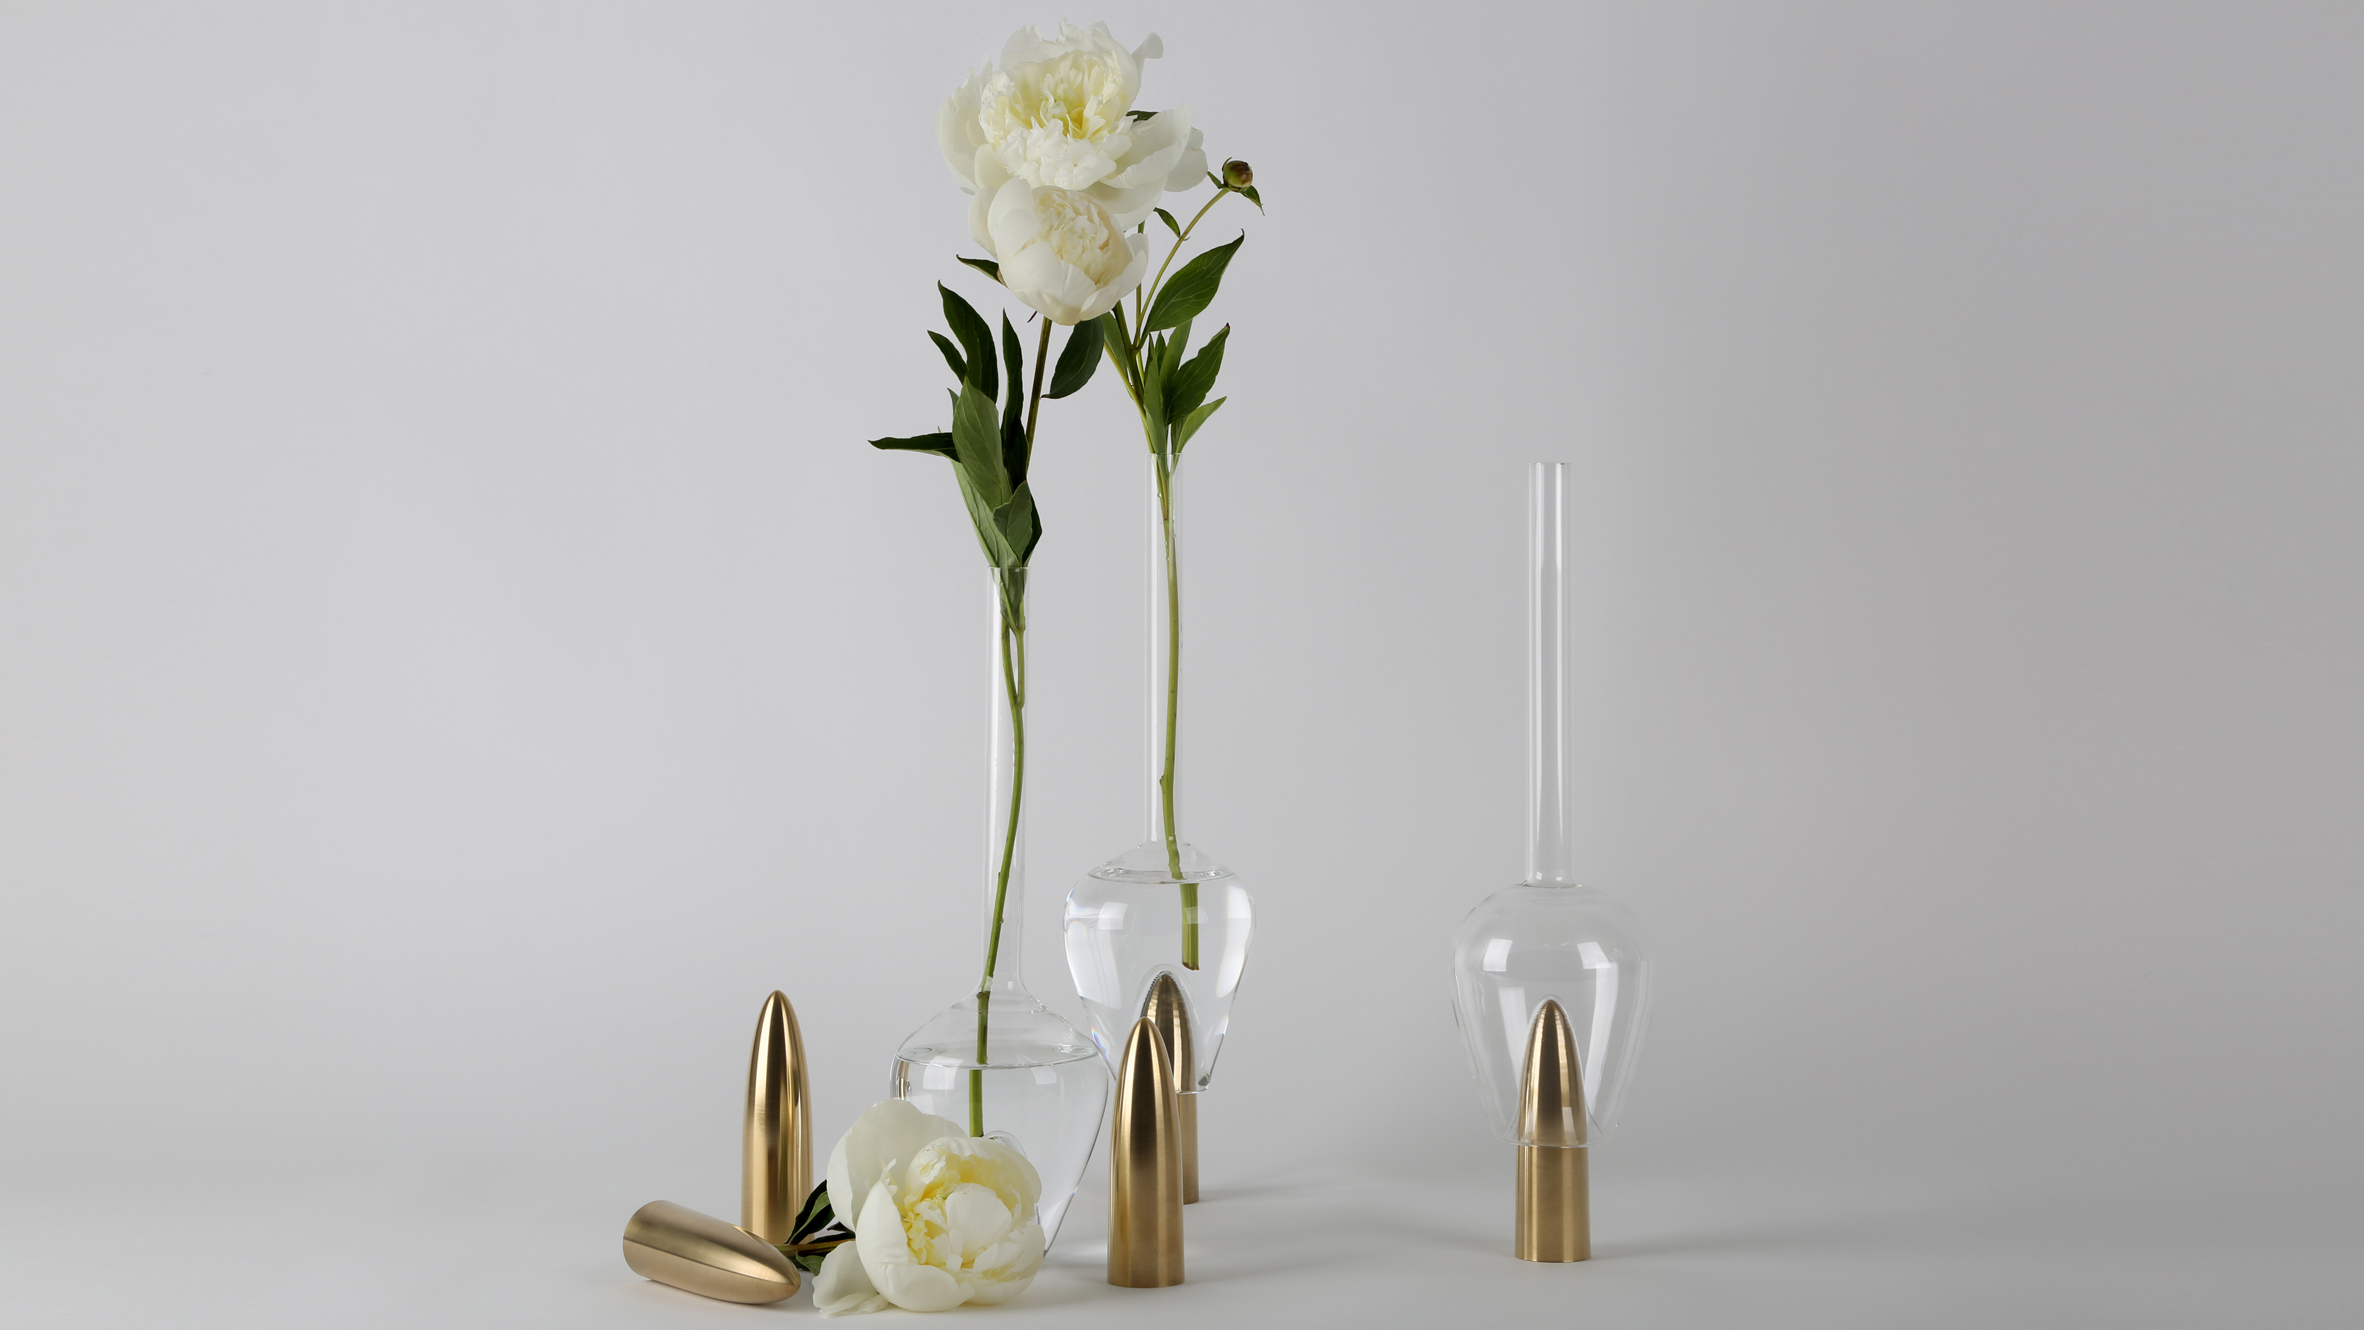 plugged-vessels-richard-yasmine-design-glassware-homeware_dezeen_hero